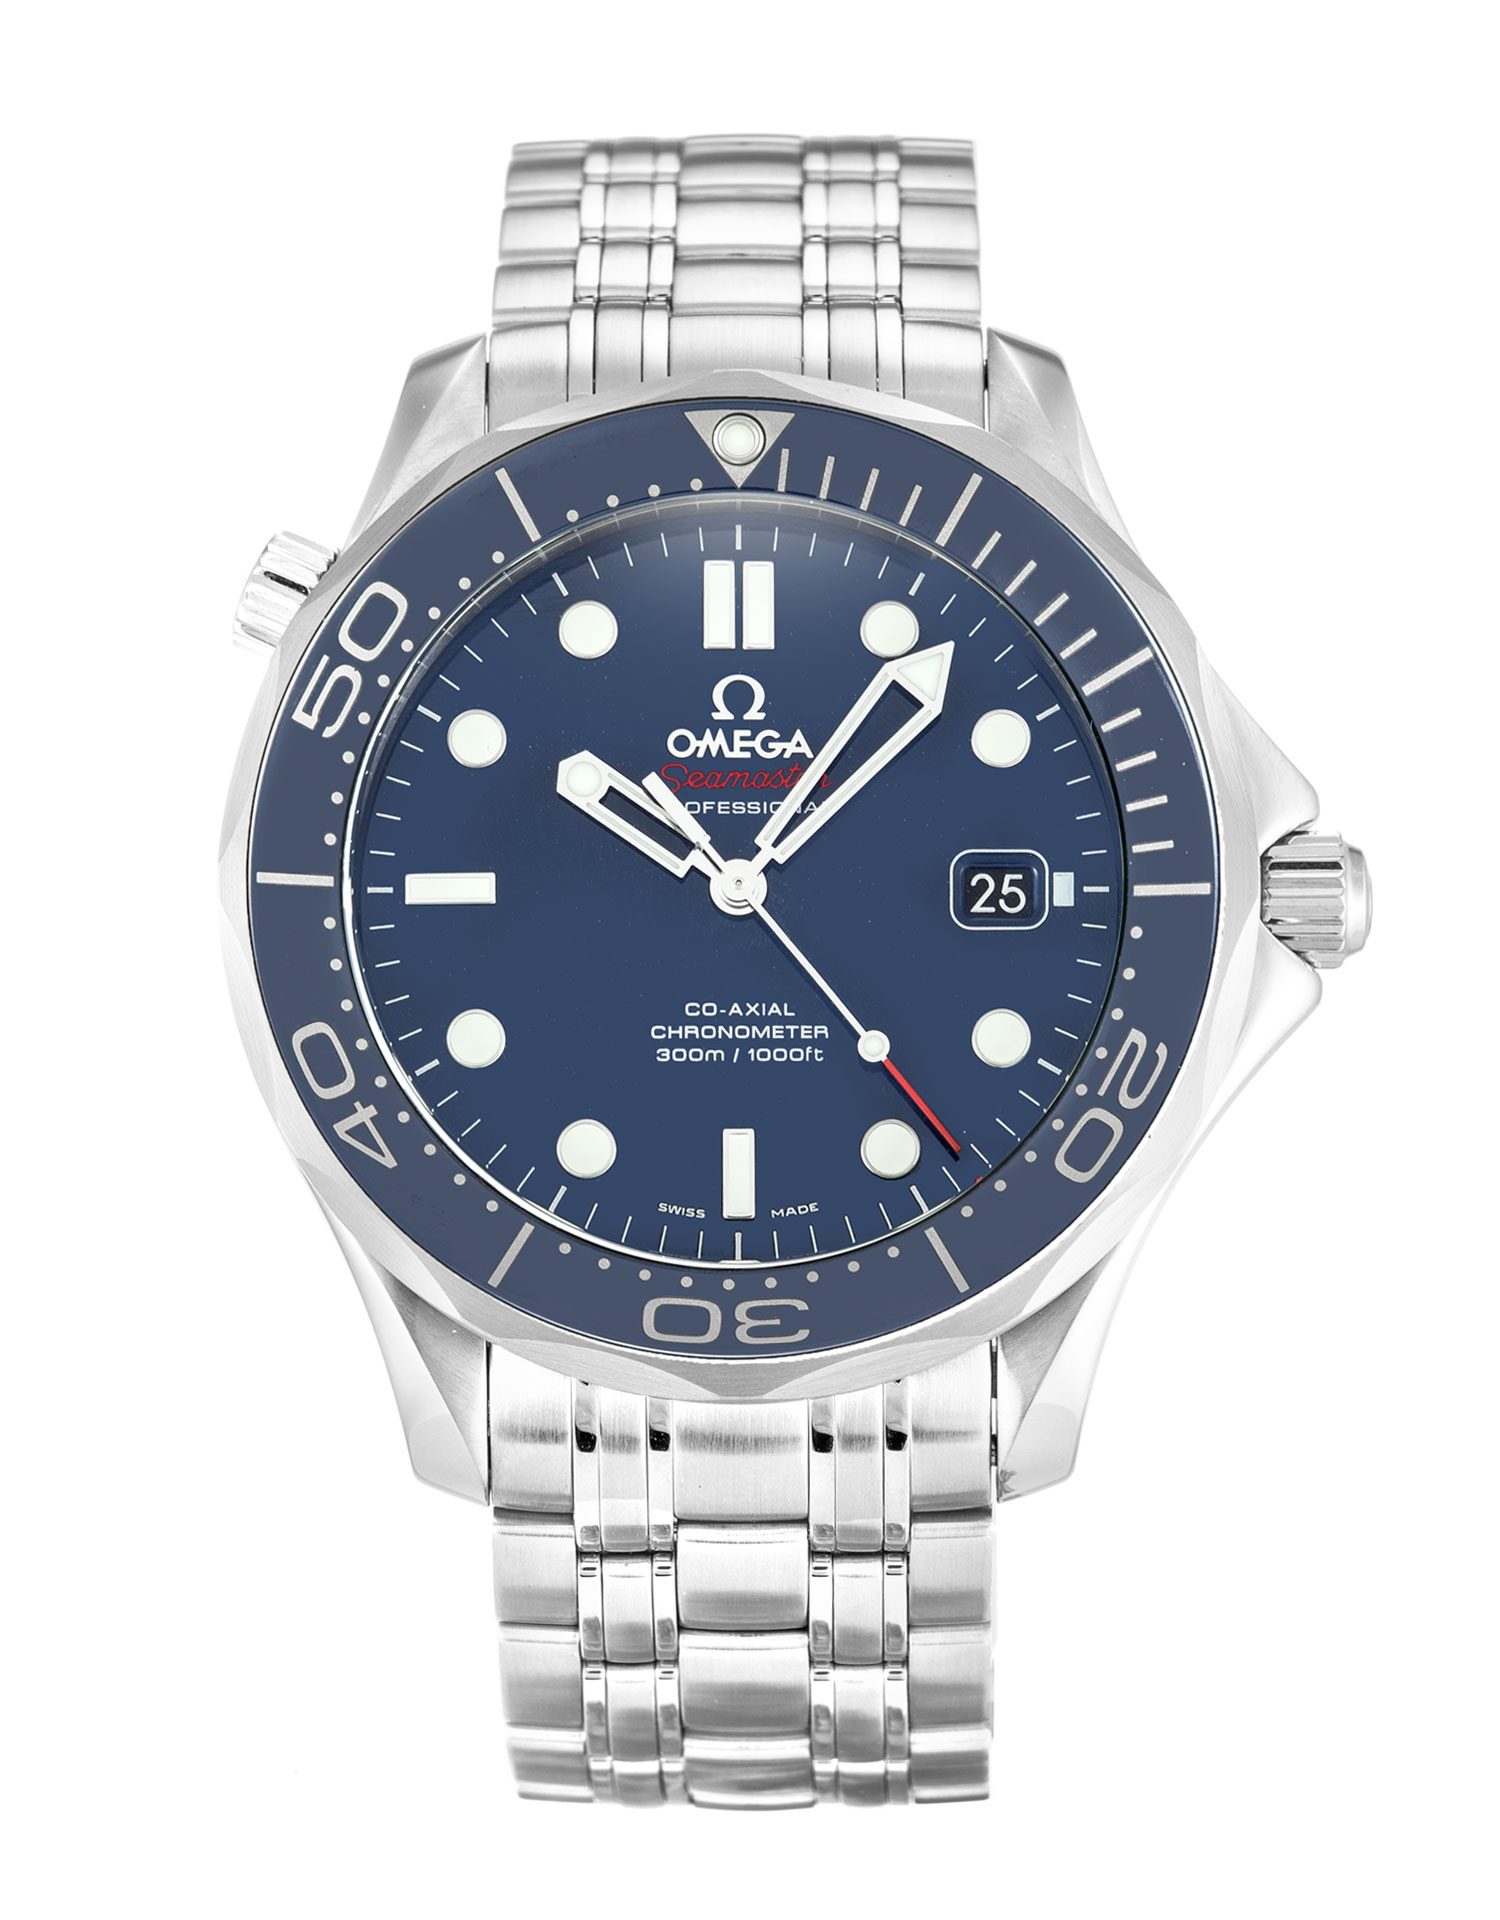 Omega Seamaster 300m Co-Axial 212.30.41.20.03.001